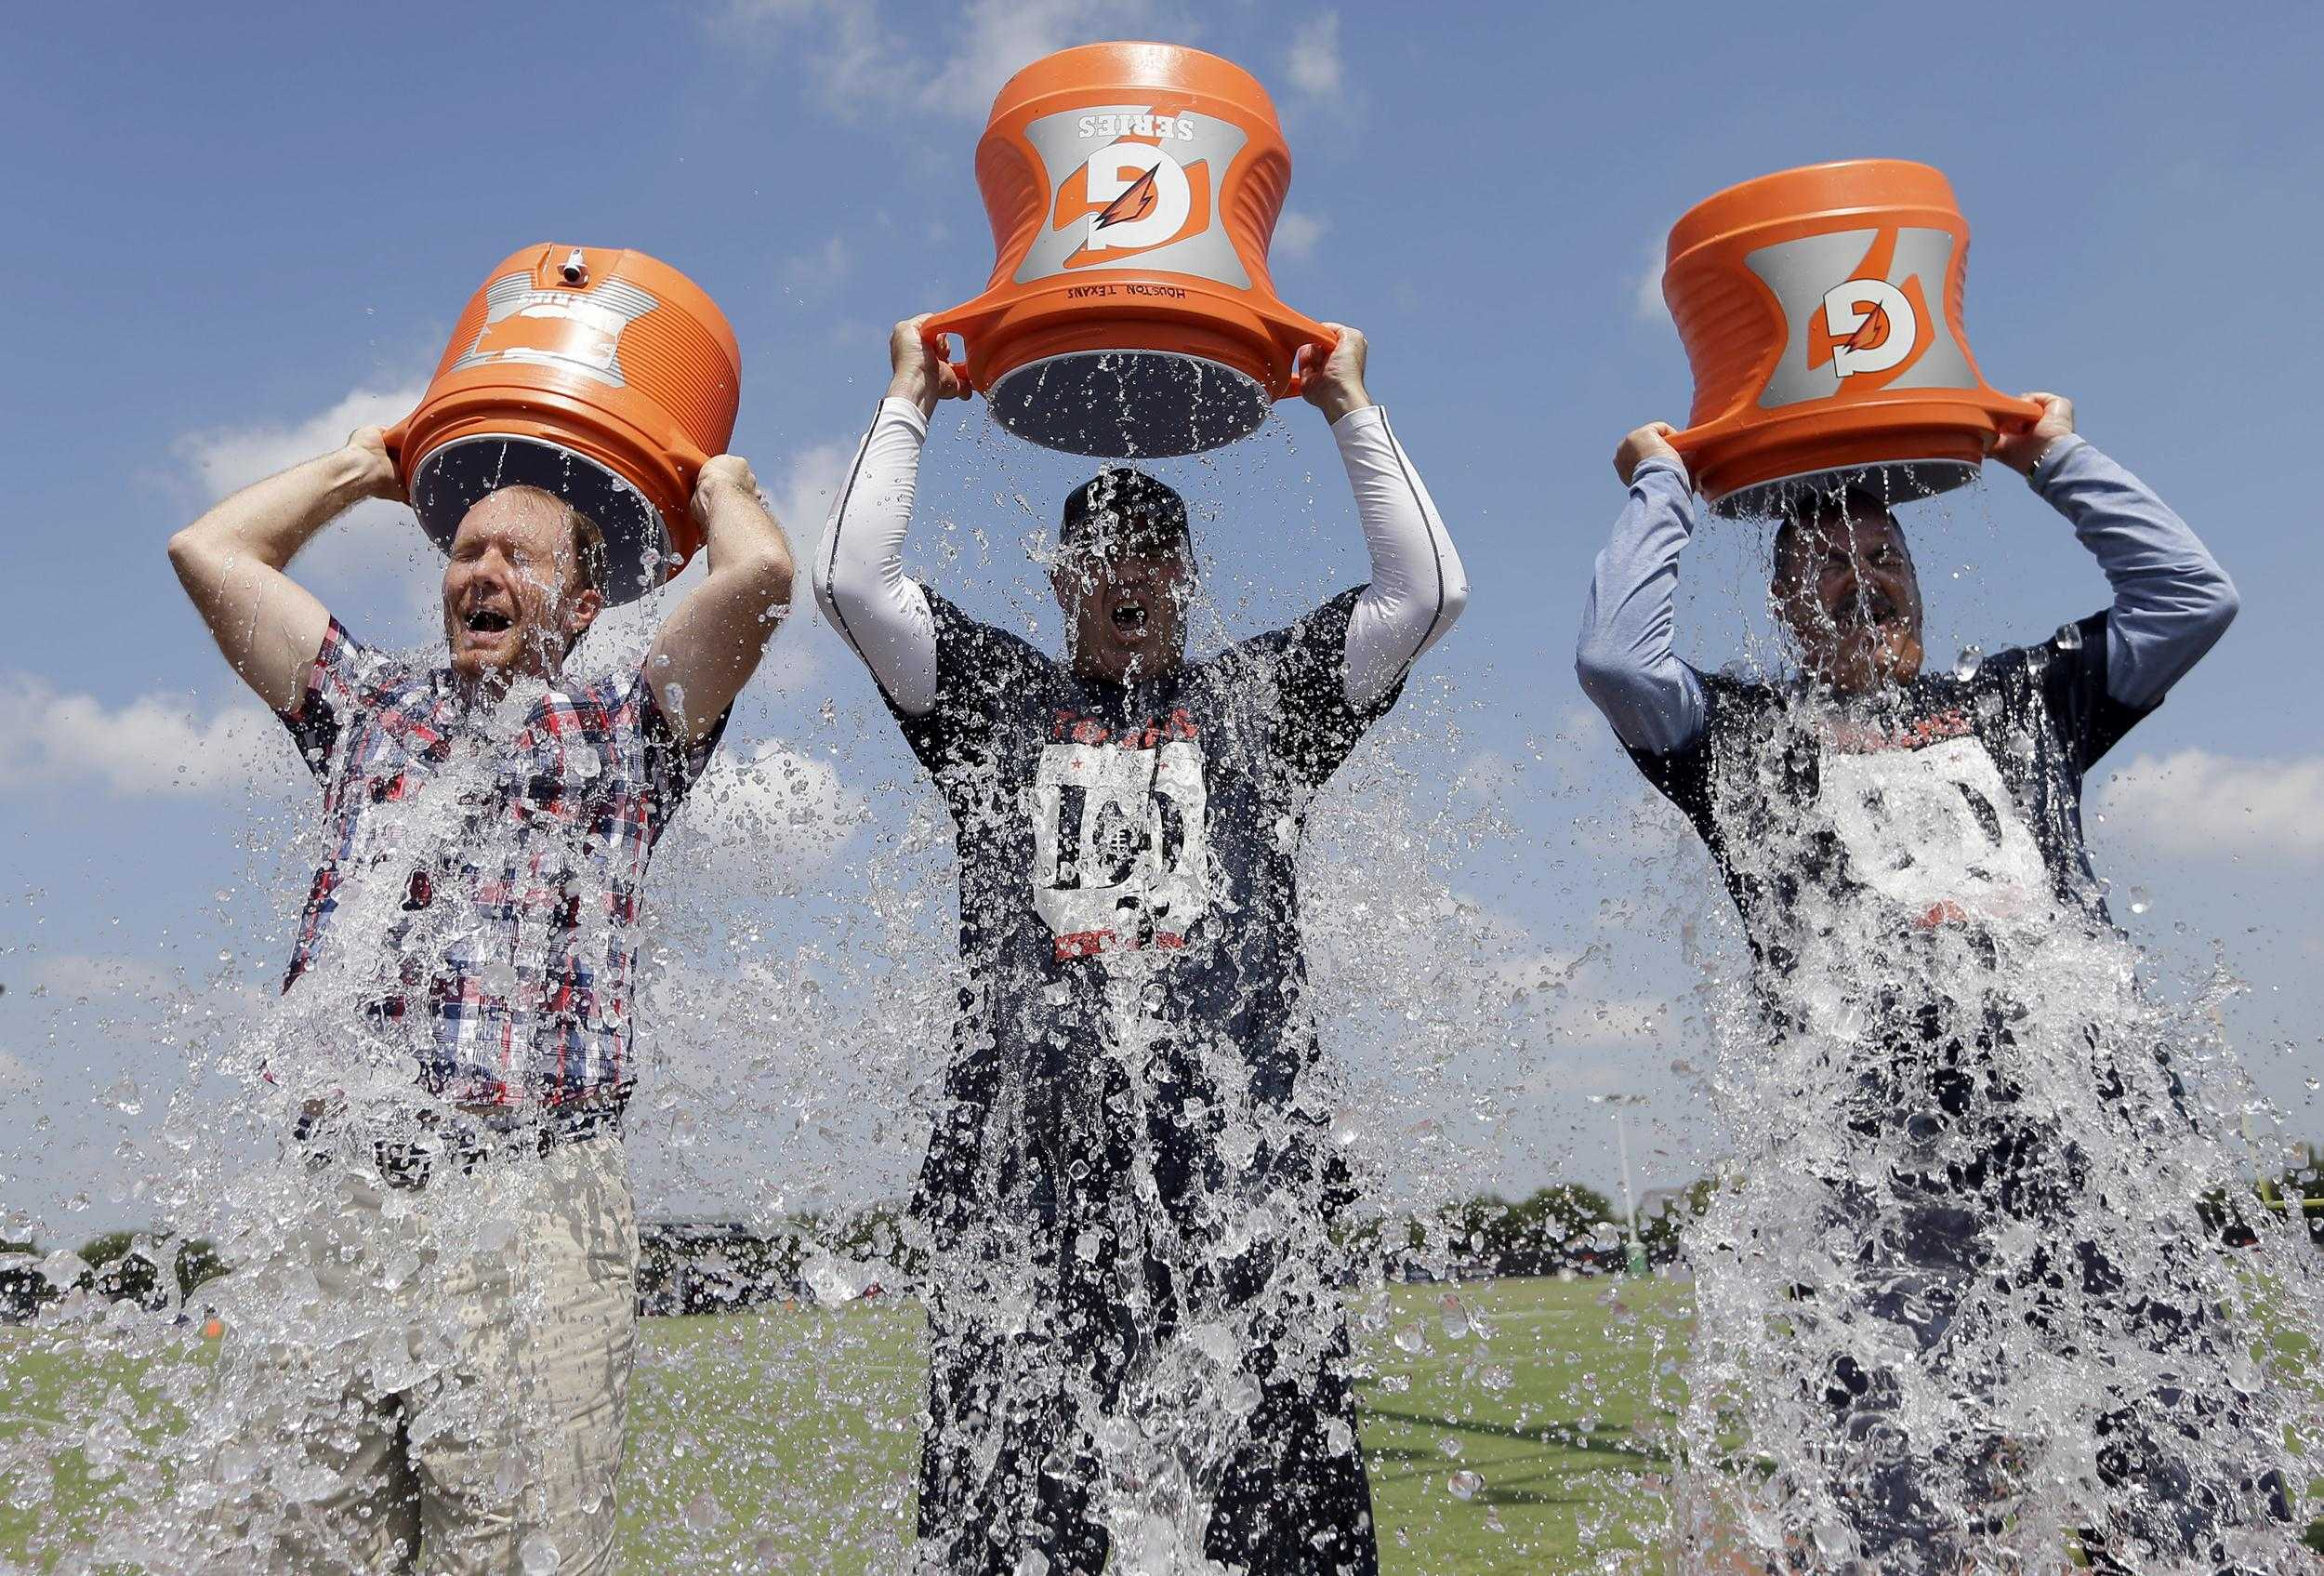 According to The Blaze, about 6 million gallons of water was used for the Ice Bucket challenge.(Provided by nbcnews.com)